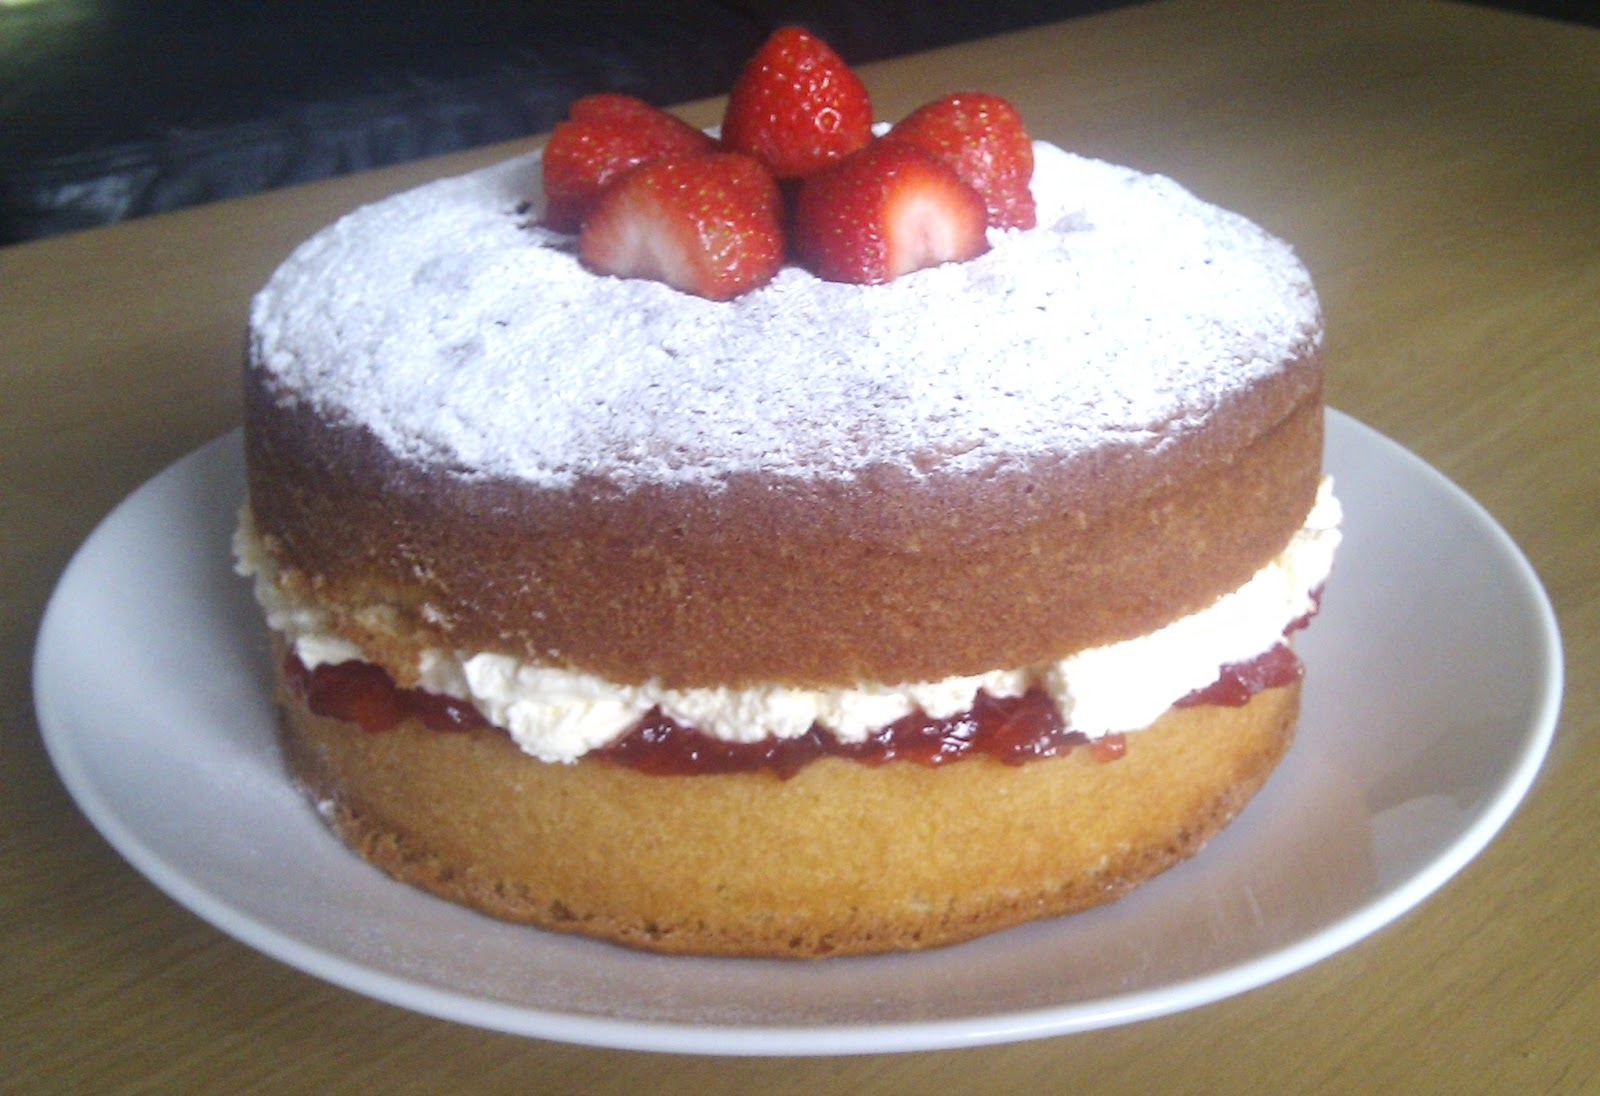 Sponge Cake Artinya : My Little Kitchen: Perfect Victoria Sponge Cake?